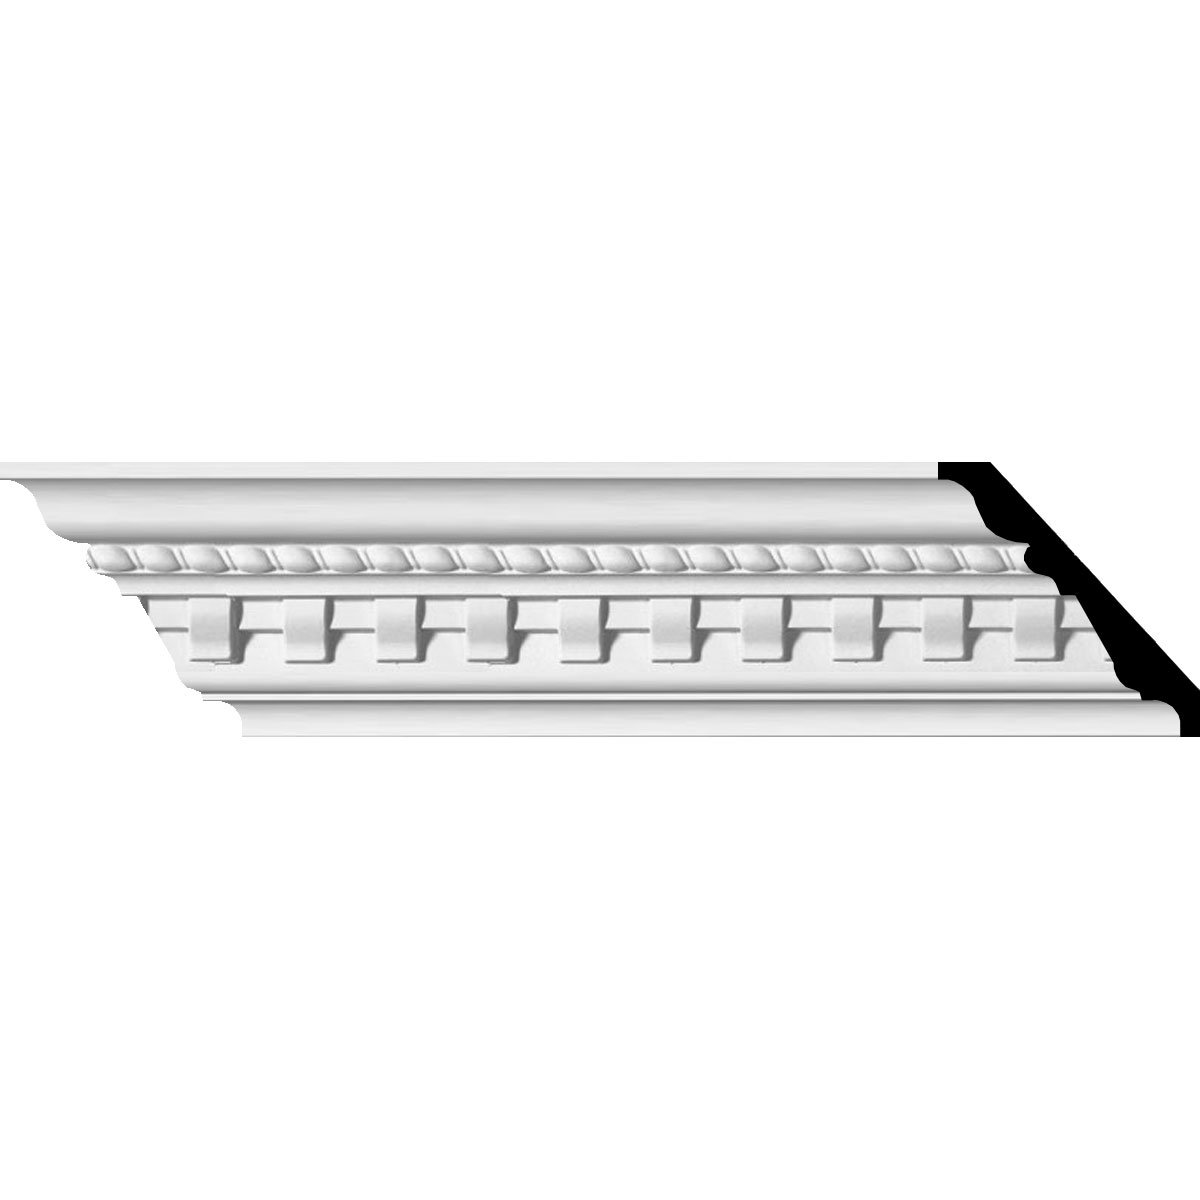 Ekena Millwork MLD04X04X05BU-CASE-8 3-1/2'' H x 3-7/8'' P x 5-1/8'' F x 95-5/8'' L Bulwark Dentil and Rope Crown Molding with 1-3/8'' Repeat (8-Pack)